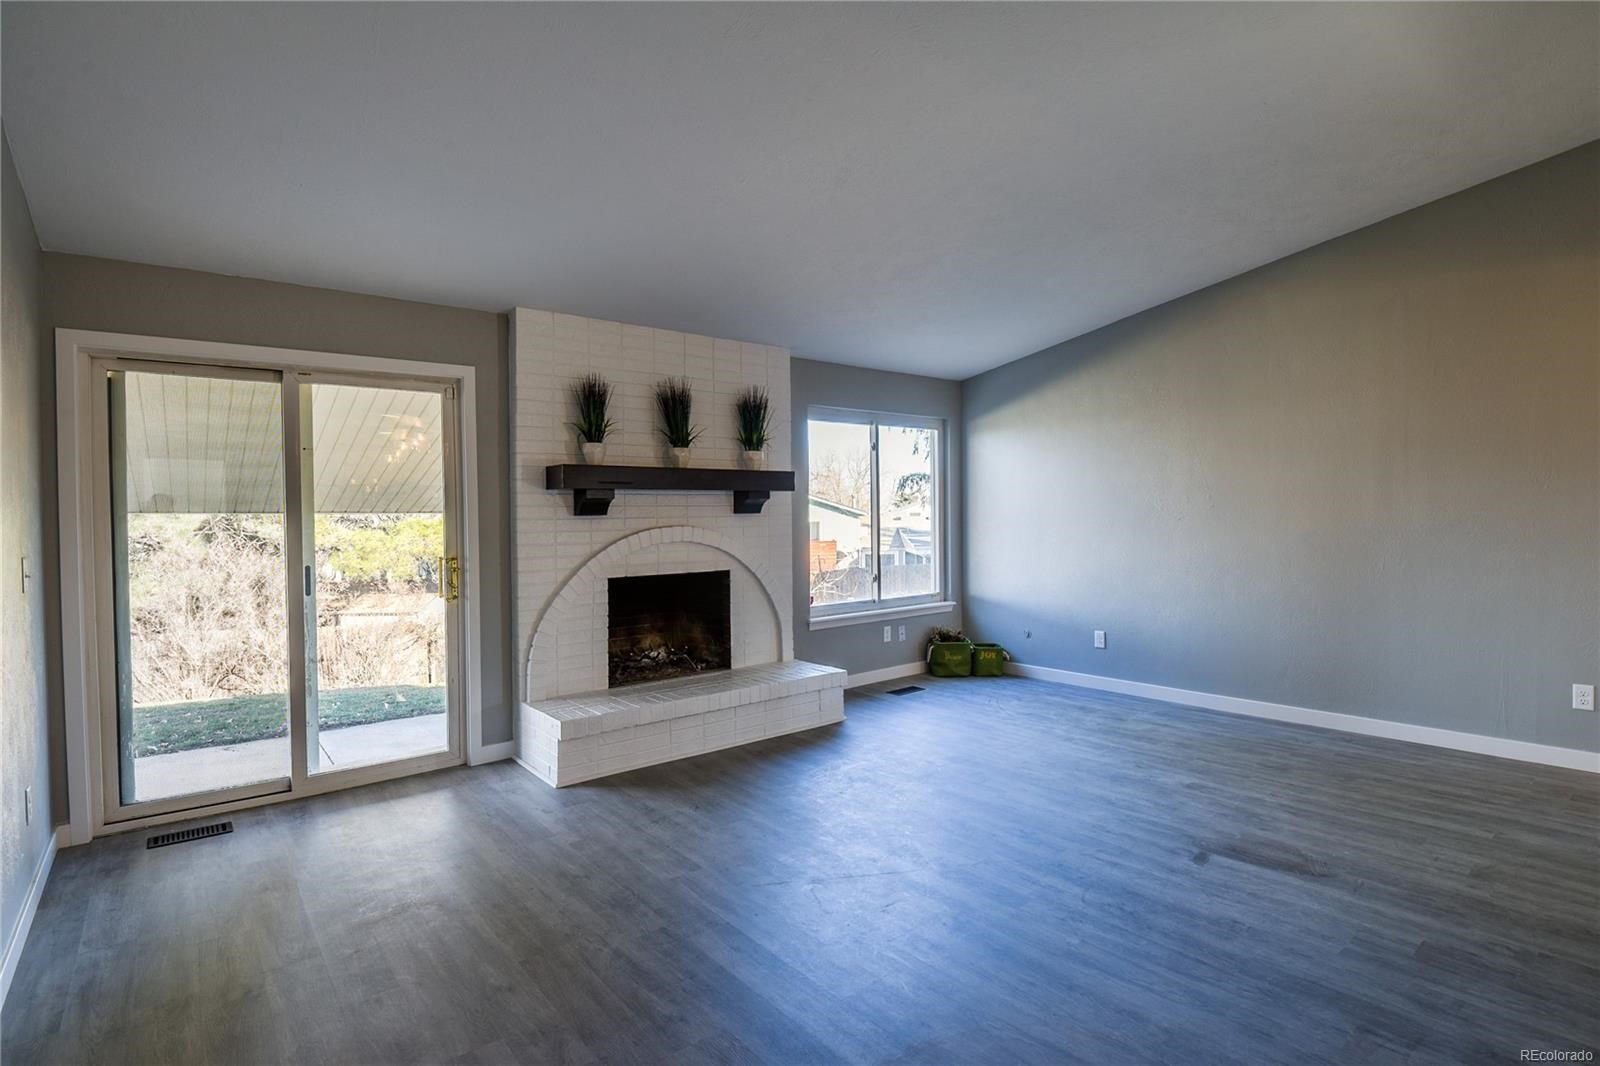 MLS# 8183776 - 5 - 2547 W 104th Circle, Westminster, CO 80234